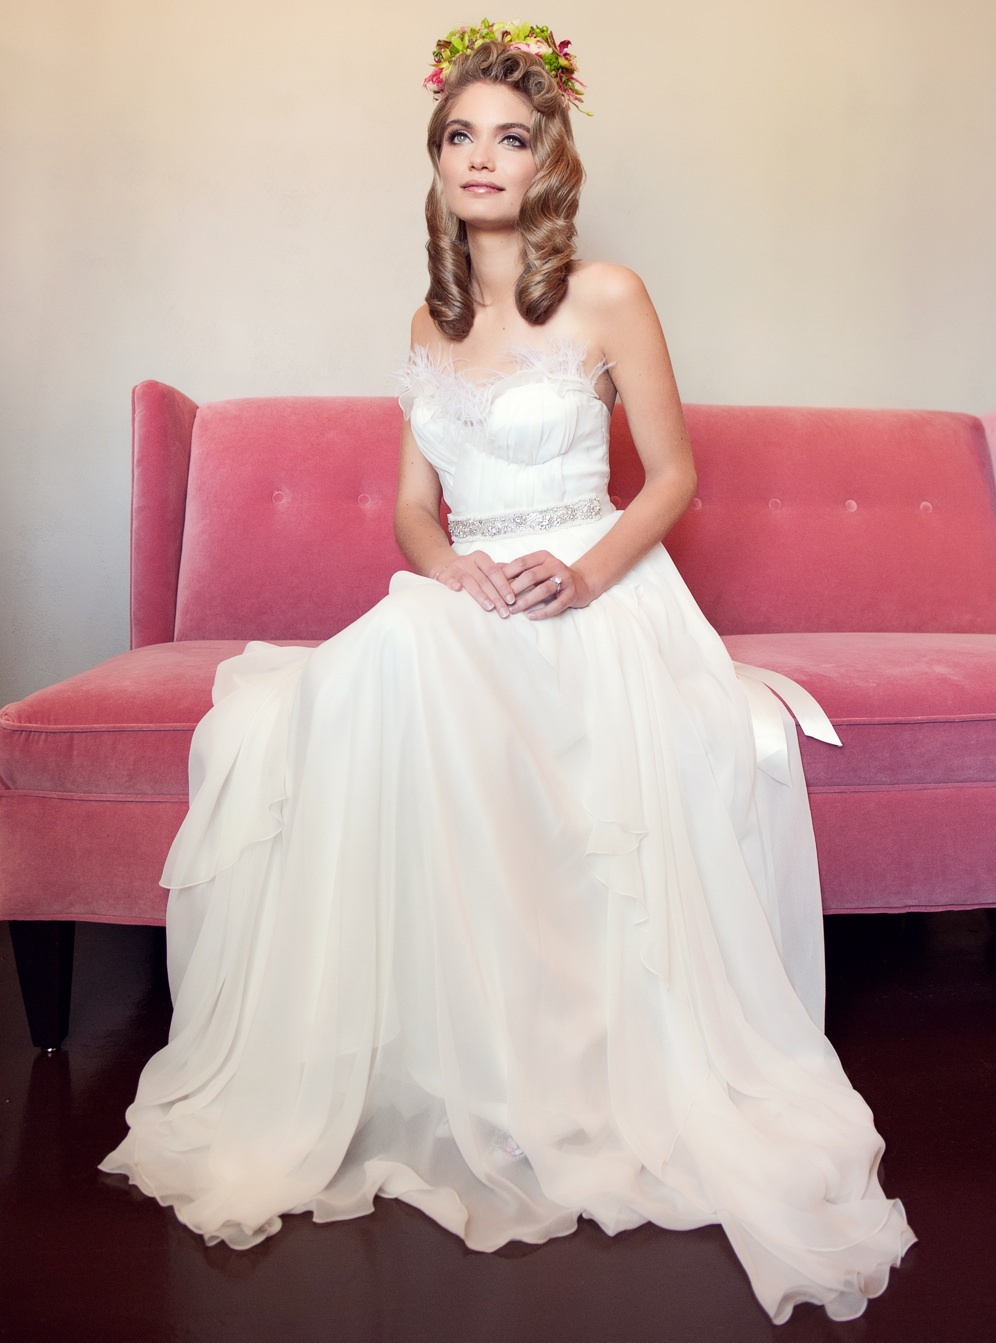 bride wedding dress handmade bridal gown